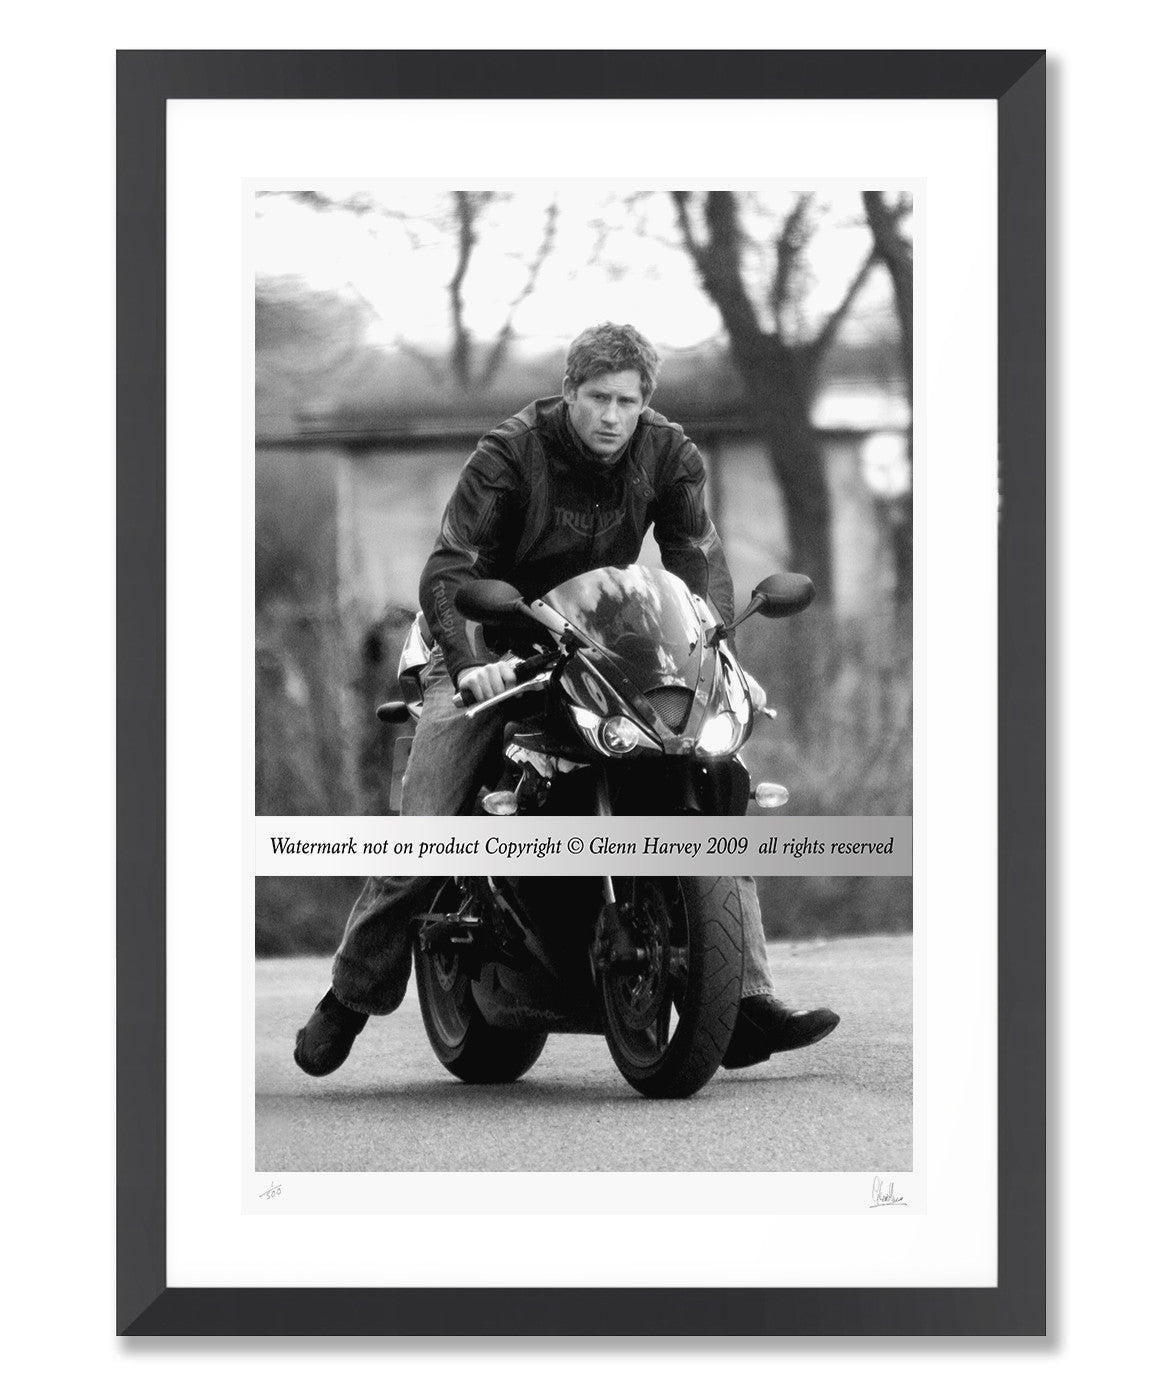 hrh prince harry luxury fine art framed photo limited edition new